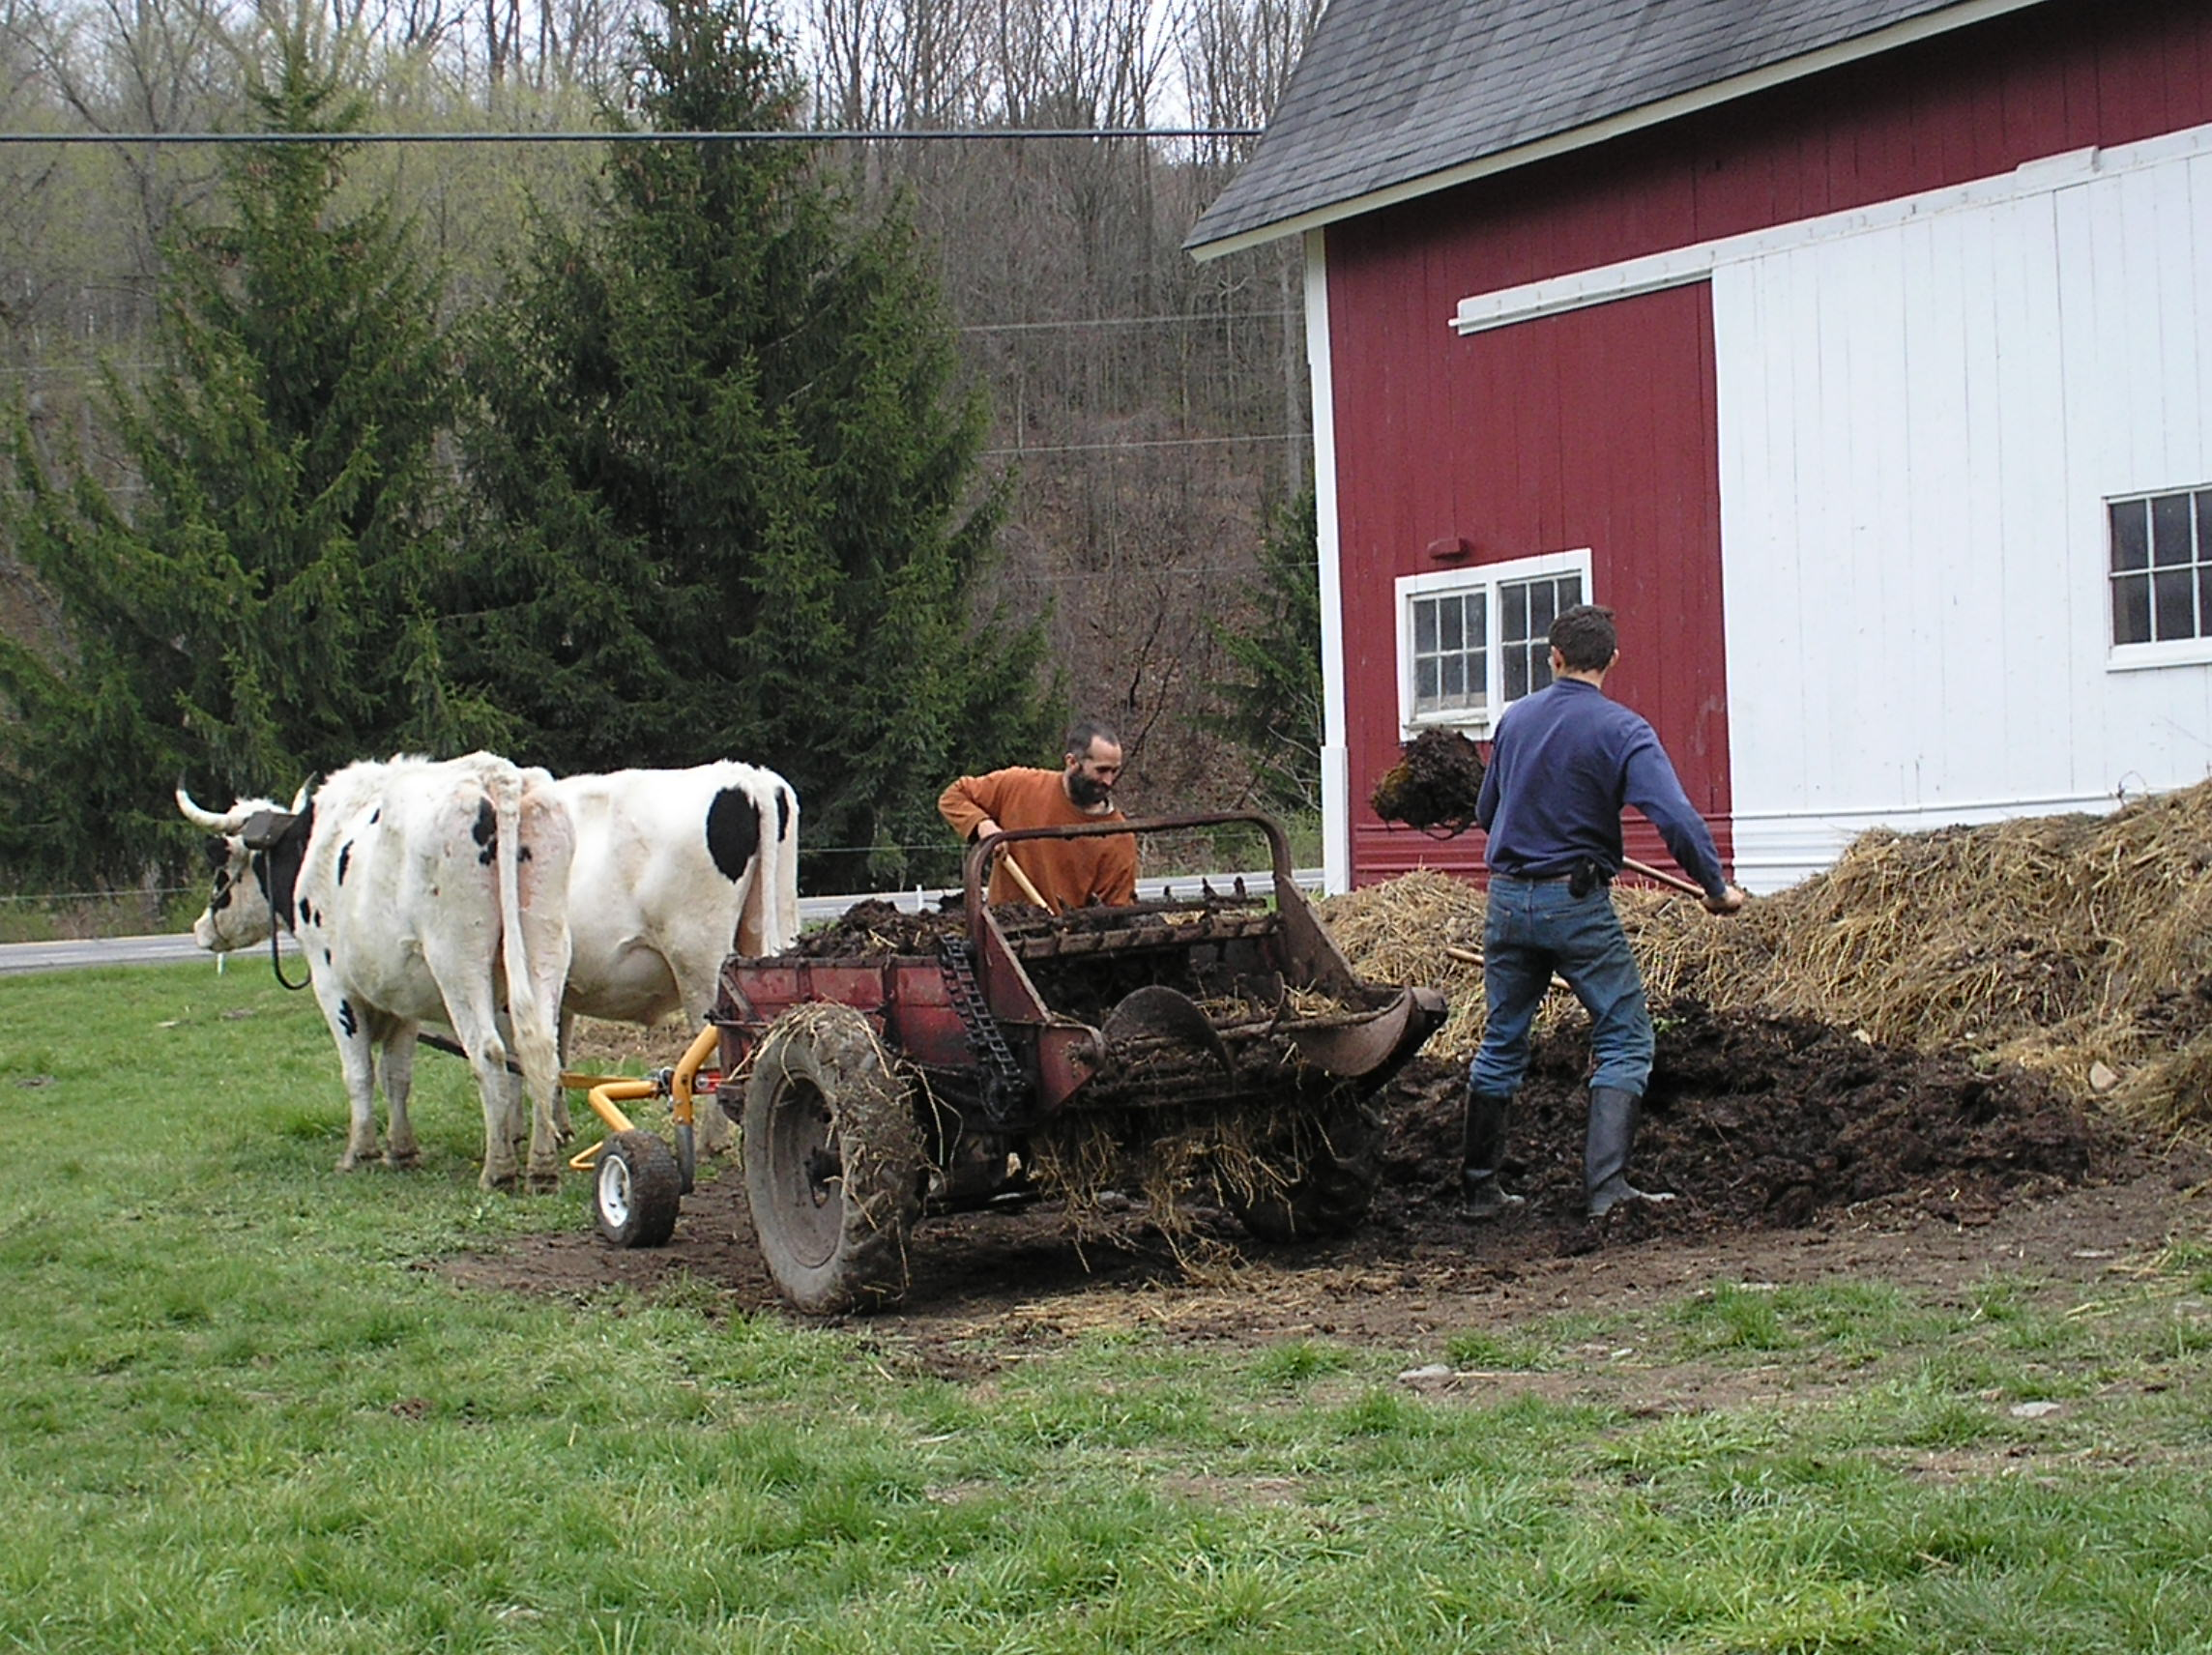 Working Manure Spreader : Working oxen on the farm today cornell small farms program